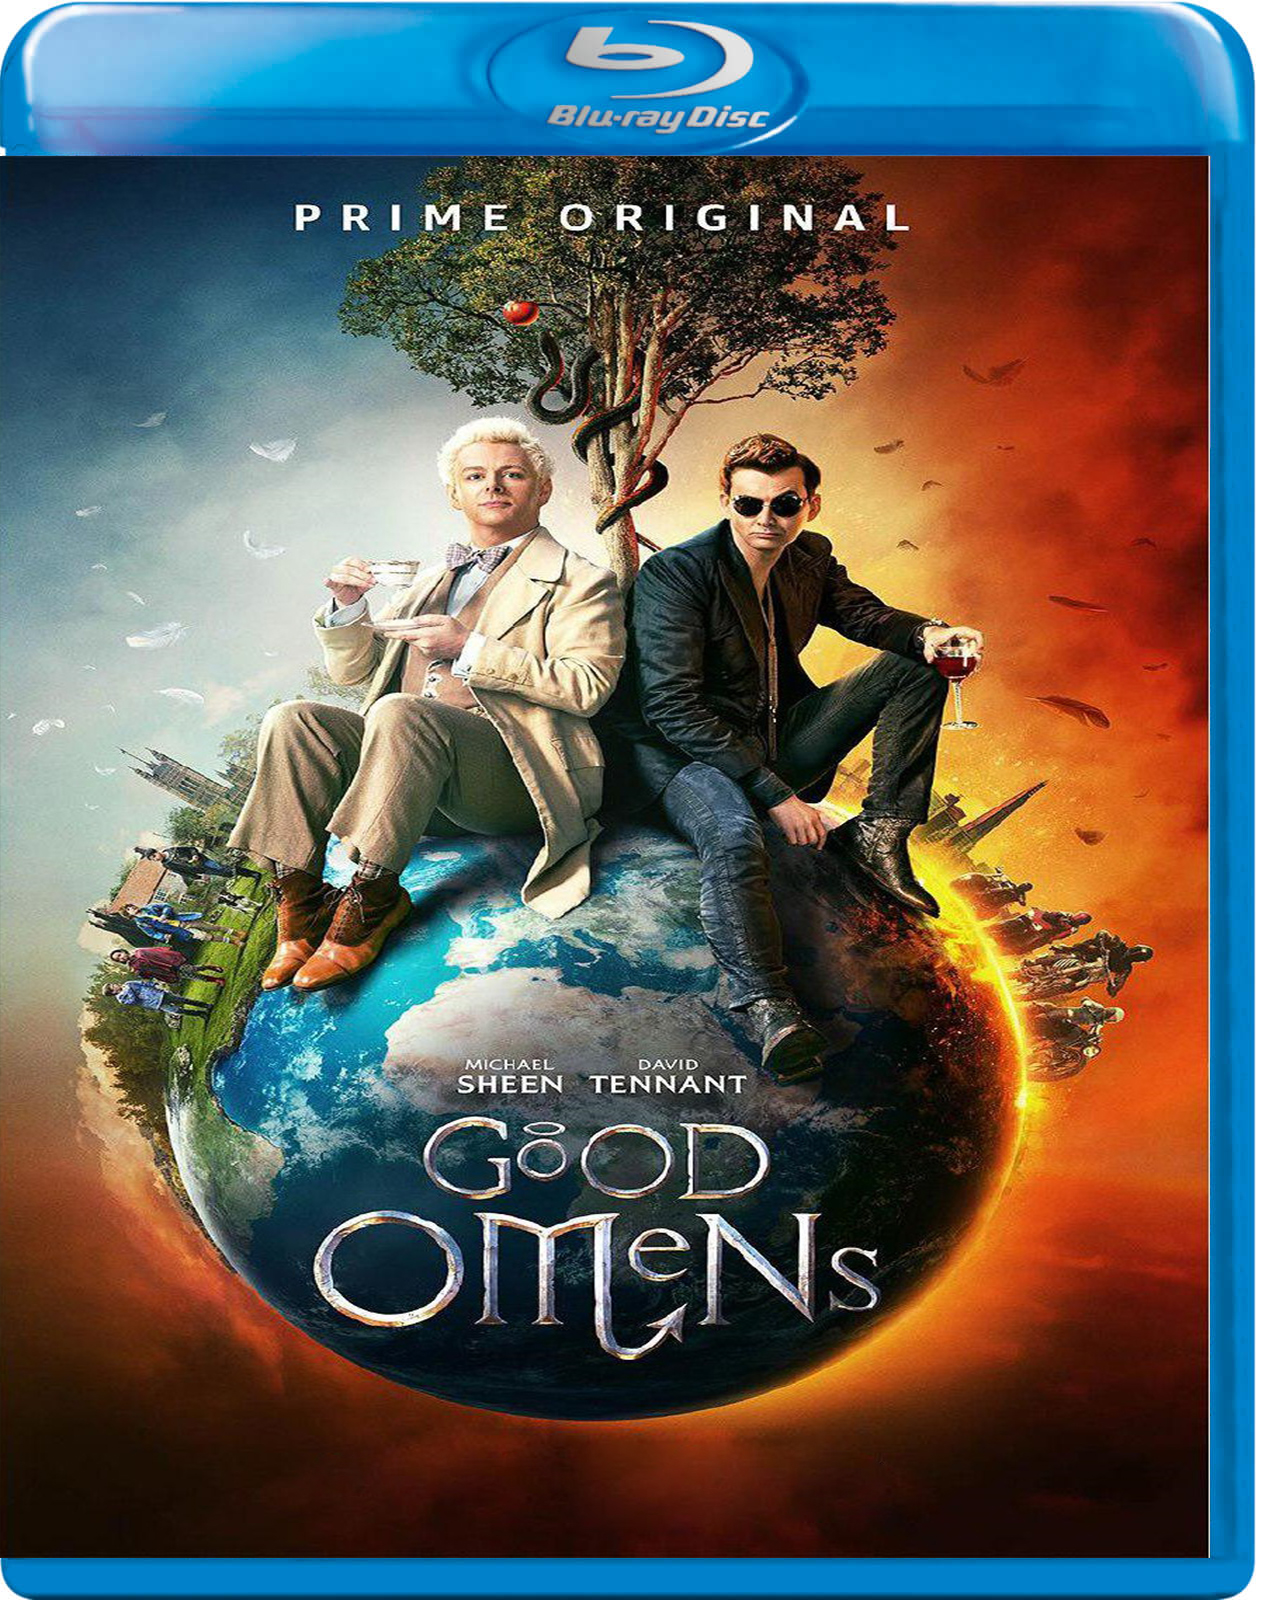 Good Omens [2019] [BD50] [Latino] [2 DISC]